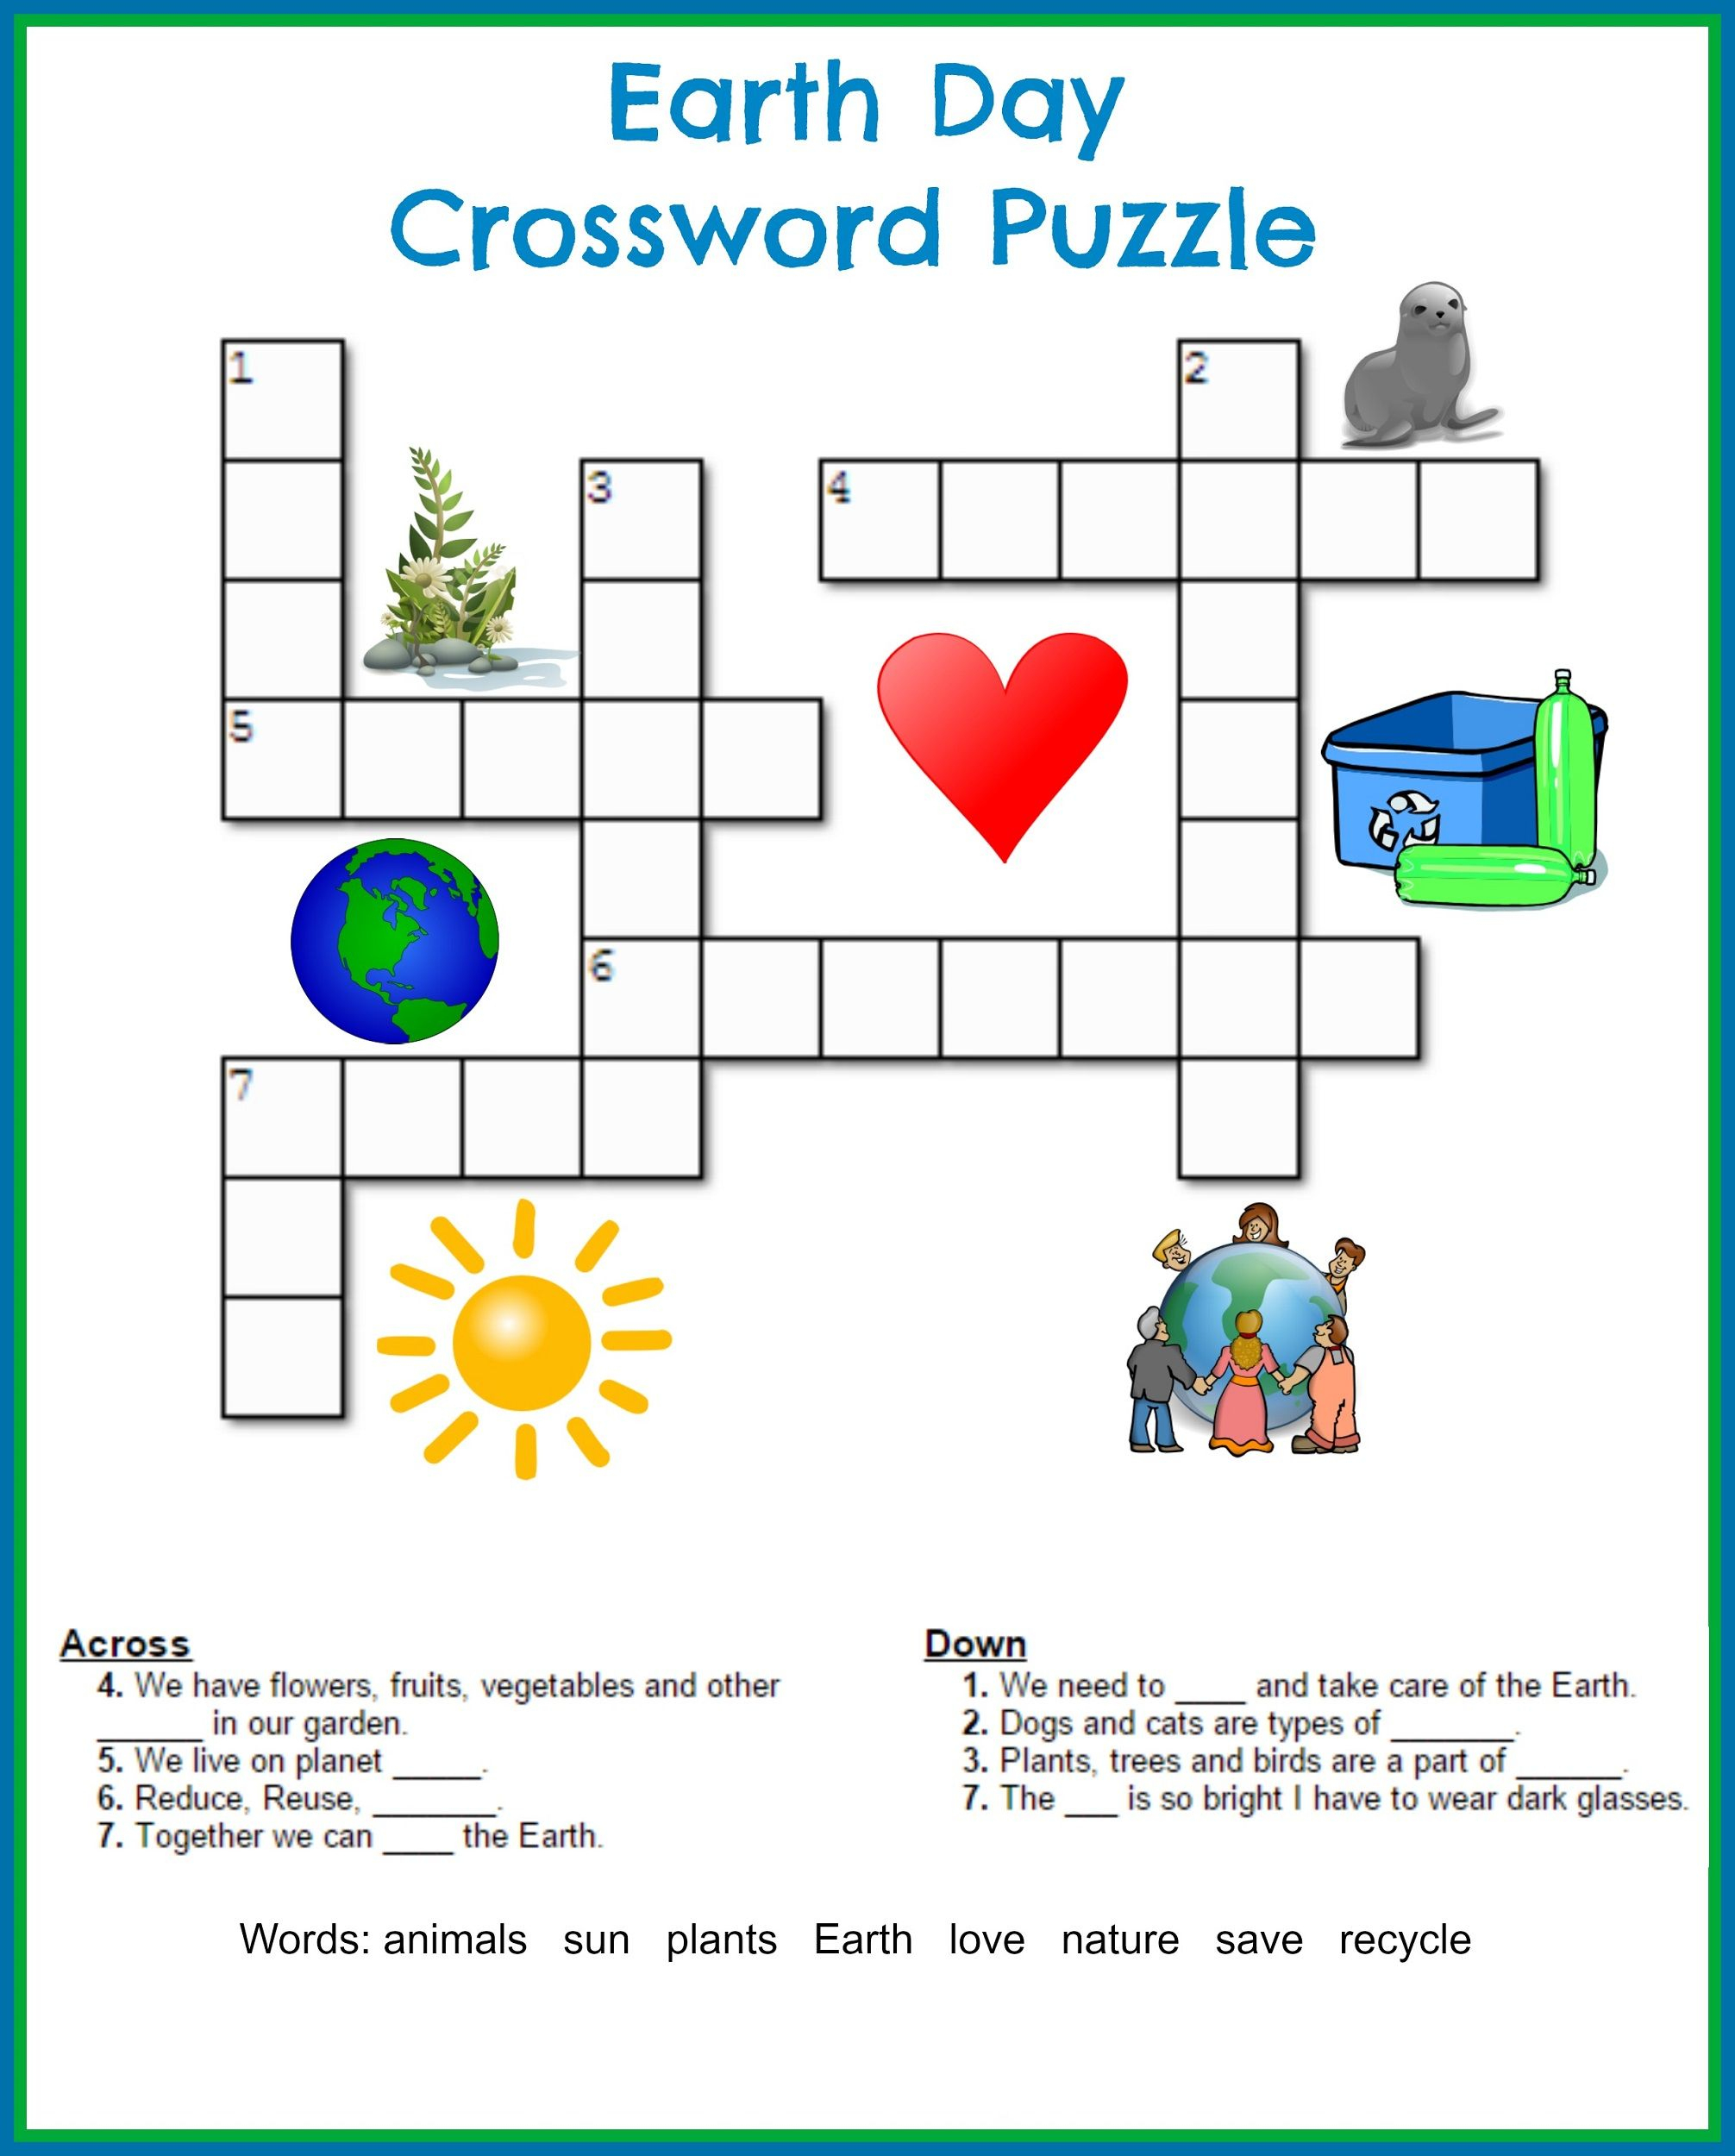 Printable Crossword Puzzles Kids | Crossword Puzzles On Earth - Printable Crossword Puzzles For Kids